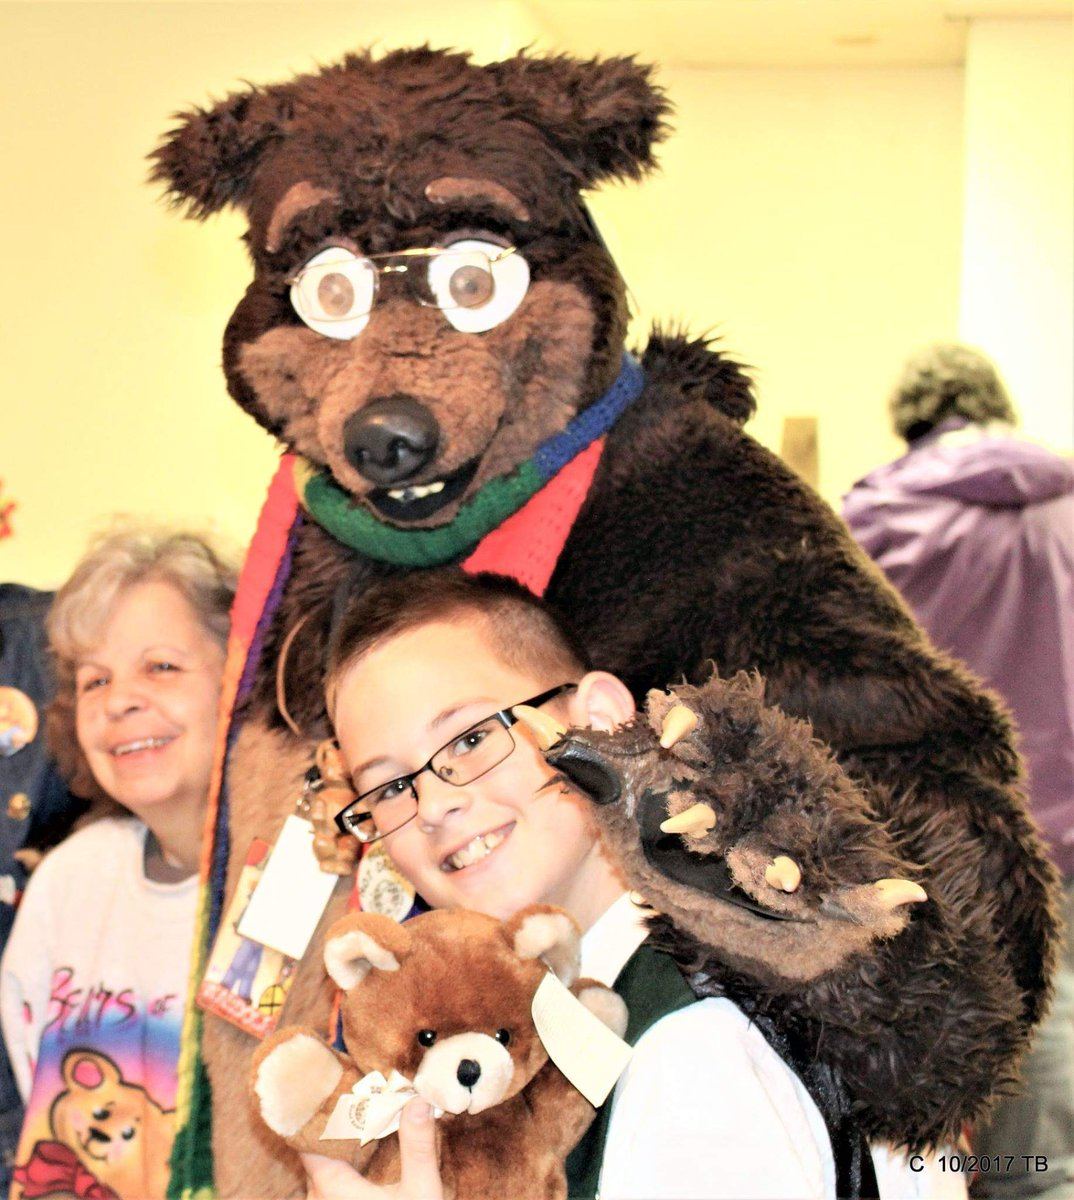 #FursuitFriday #fursuiteveryday #WhyIfursuit. This is one of the reasons why I still #fursuit.  Waldolf with some friends at the 2017 #OctoBEARfest in #Toledo OH.